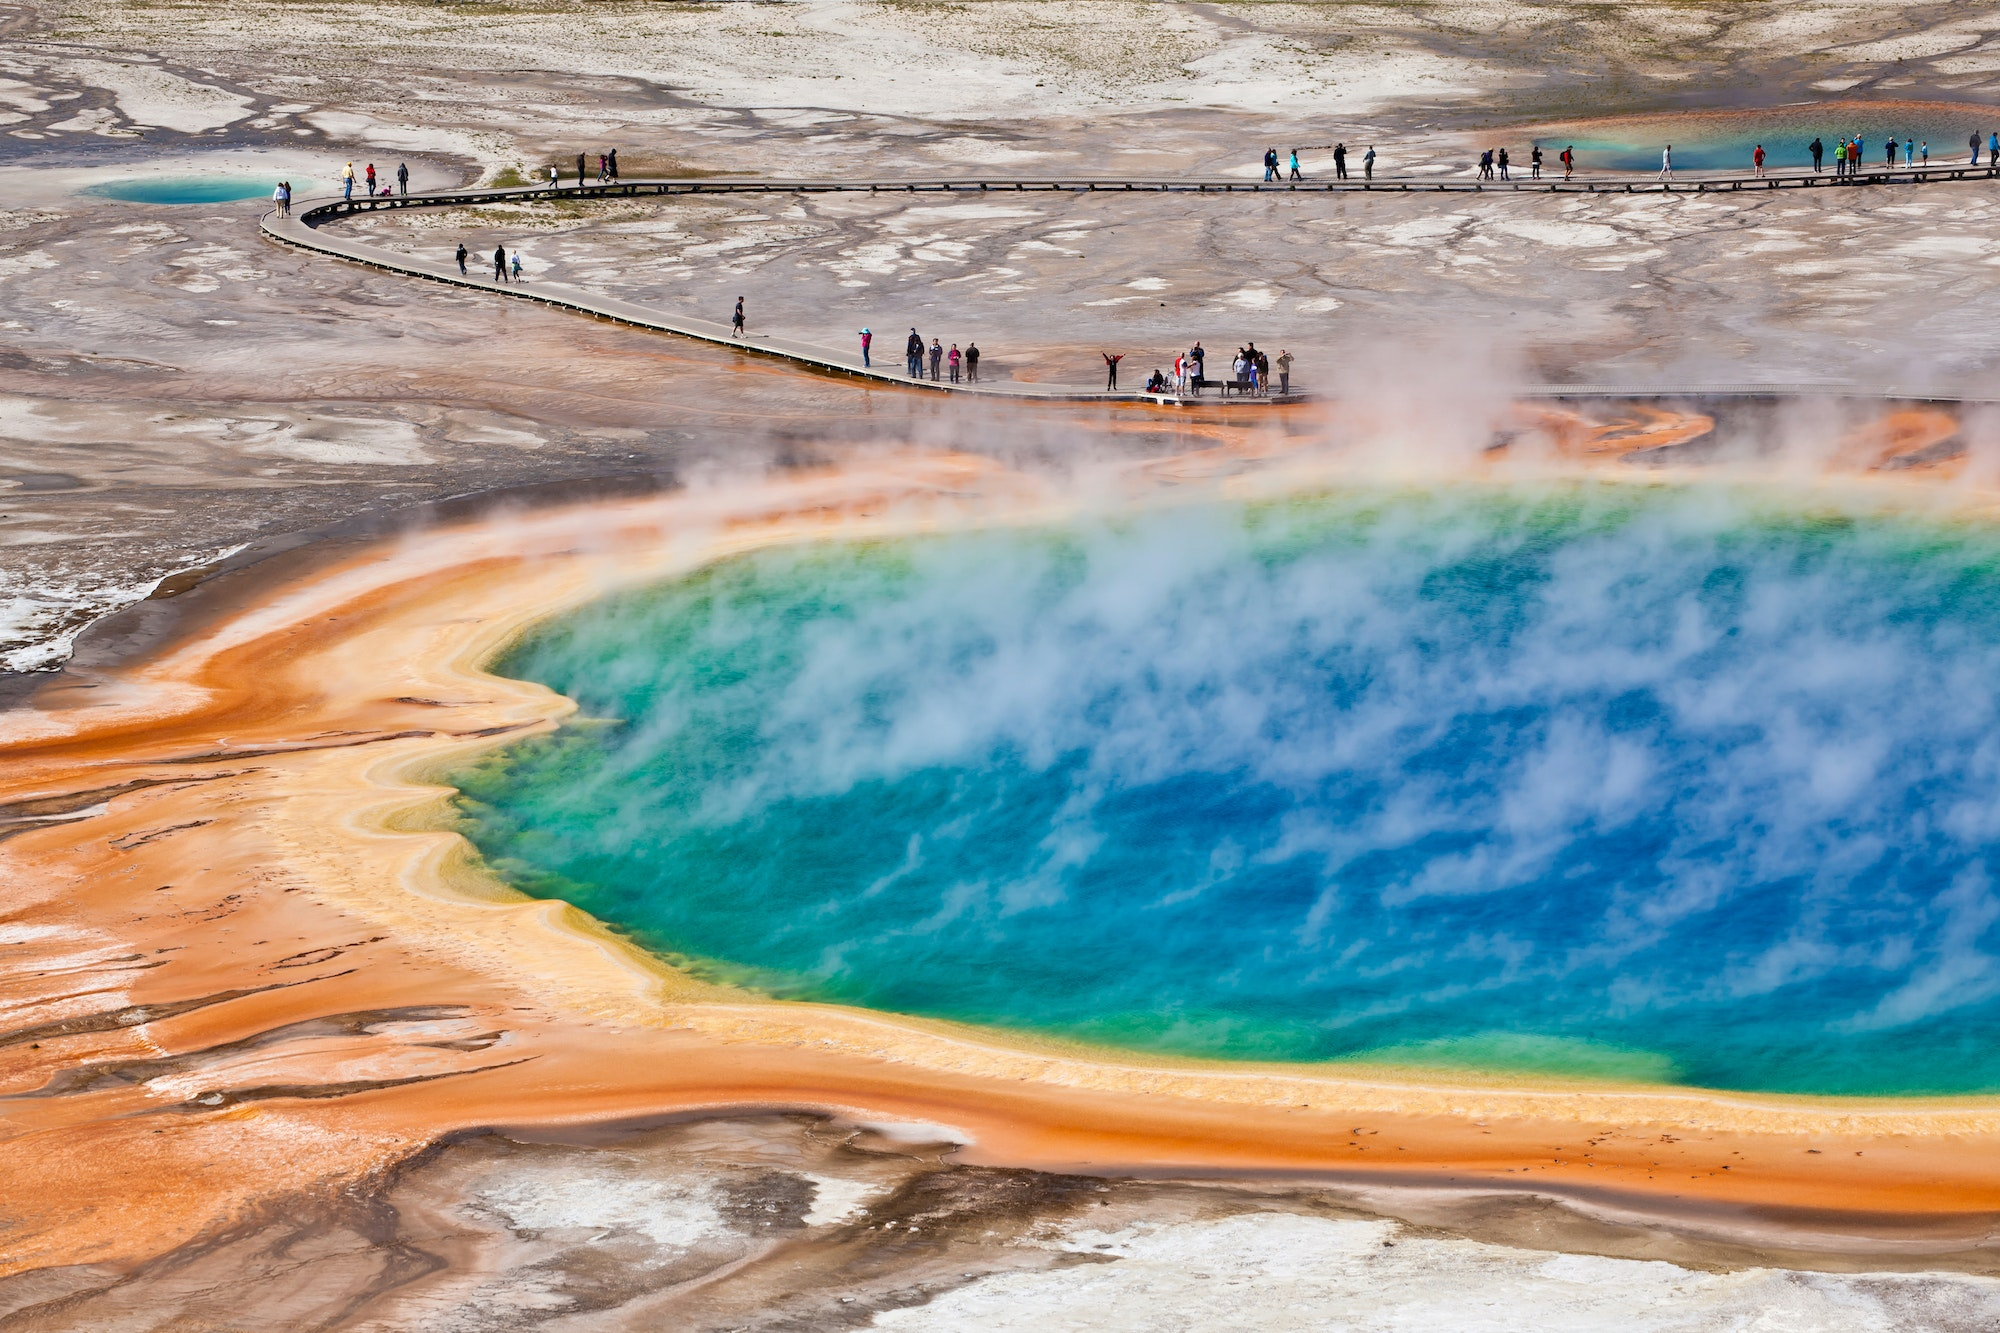 Yellowstone's Grand Prismatic Spring is the largest hot spring in the United States and the third largest in the world.